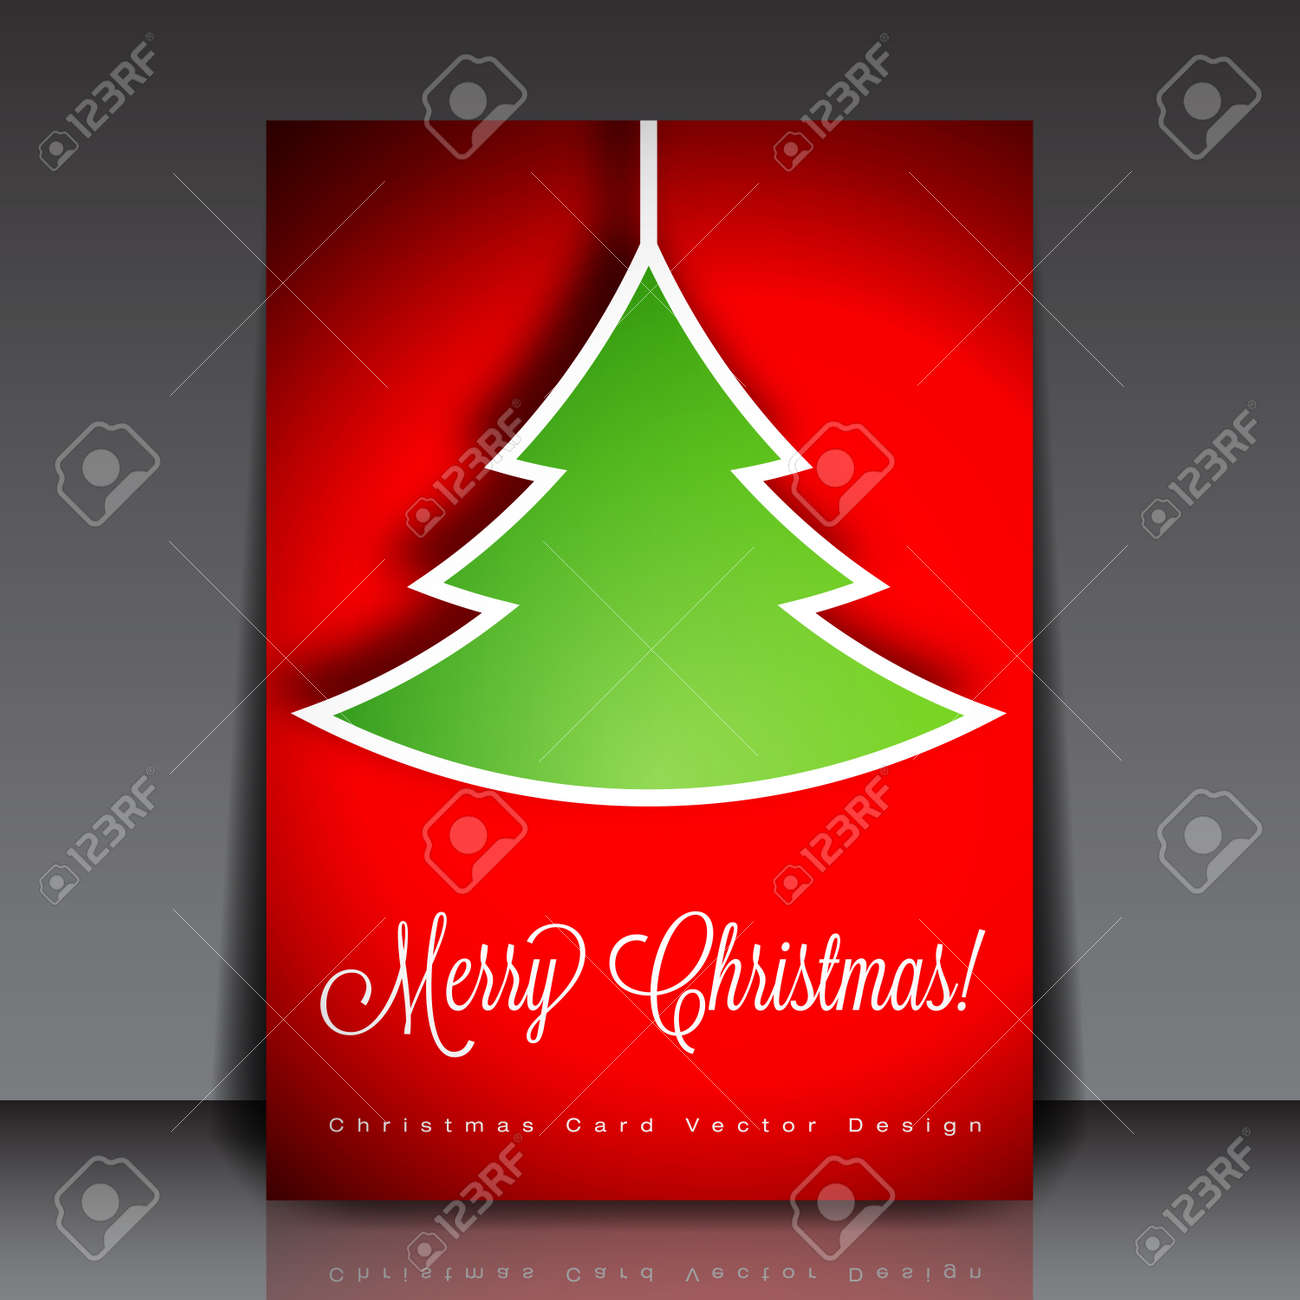 christmas flyer template royalty cliparts vectors and stock christmas flyer template stock vector 17052963